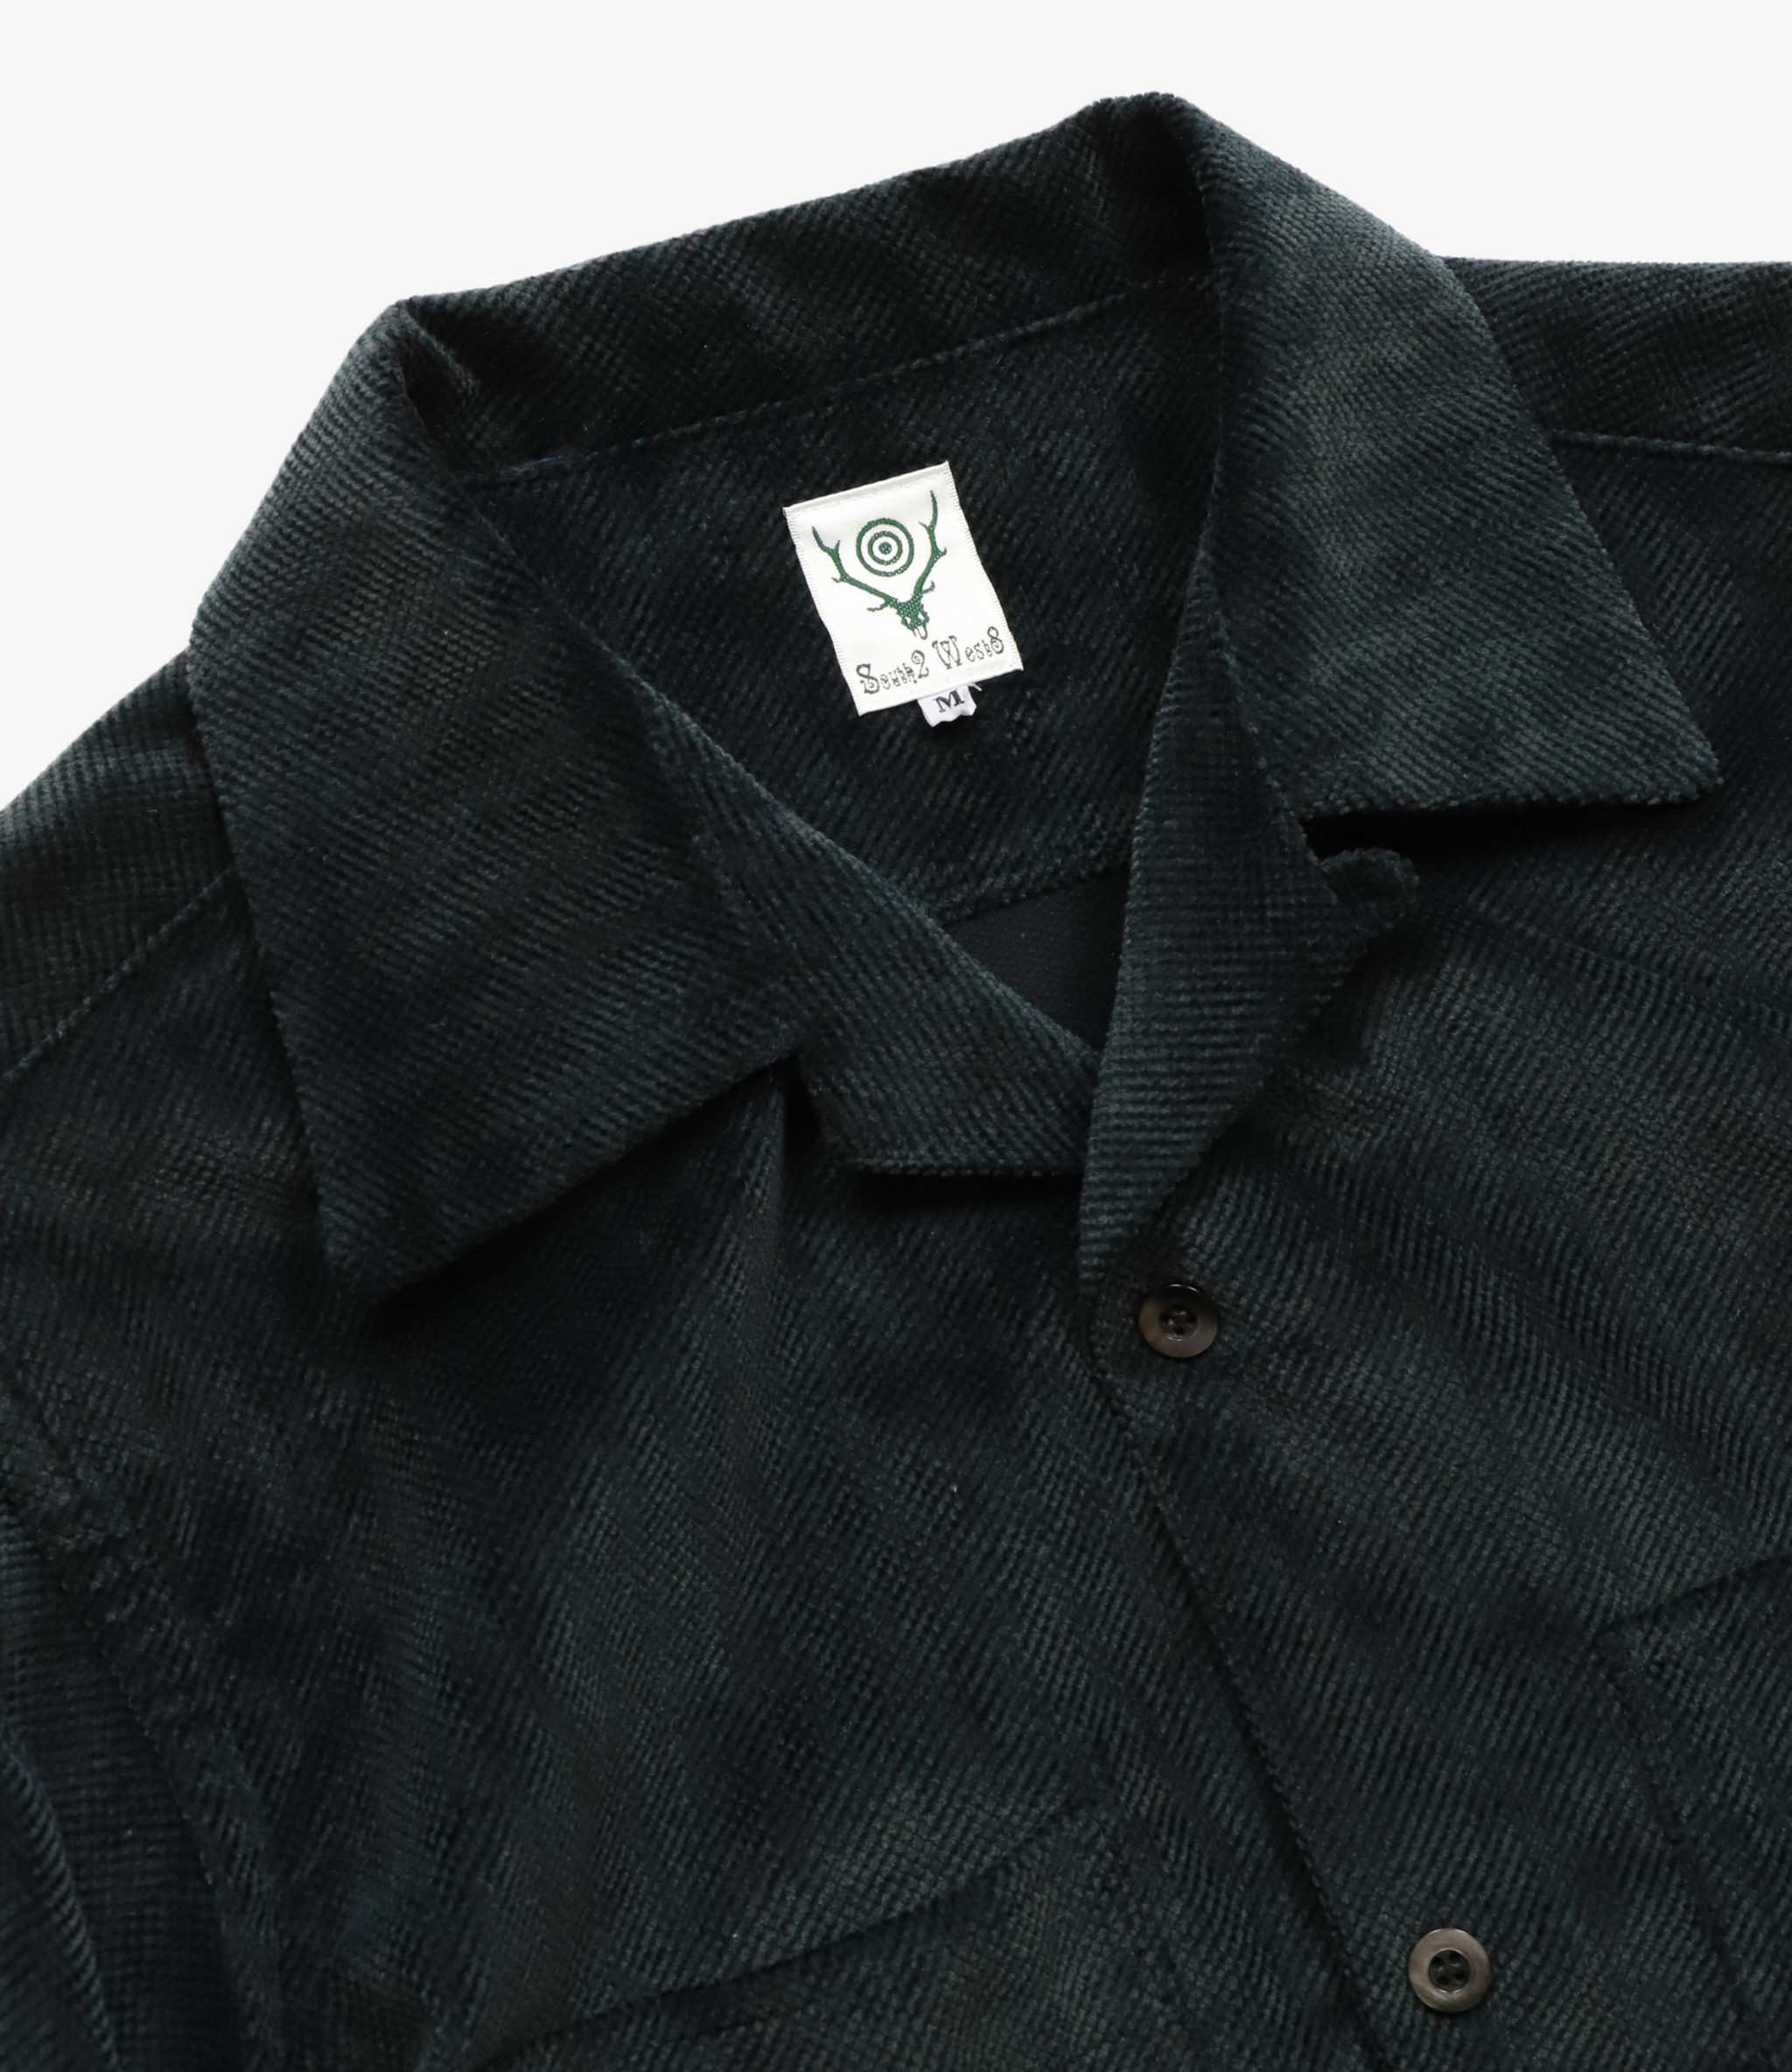 South2 West8 One-up Shirt Cotton Twill-Cut Corduroy - Black